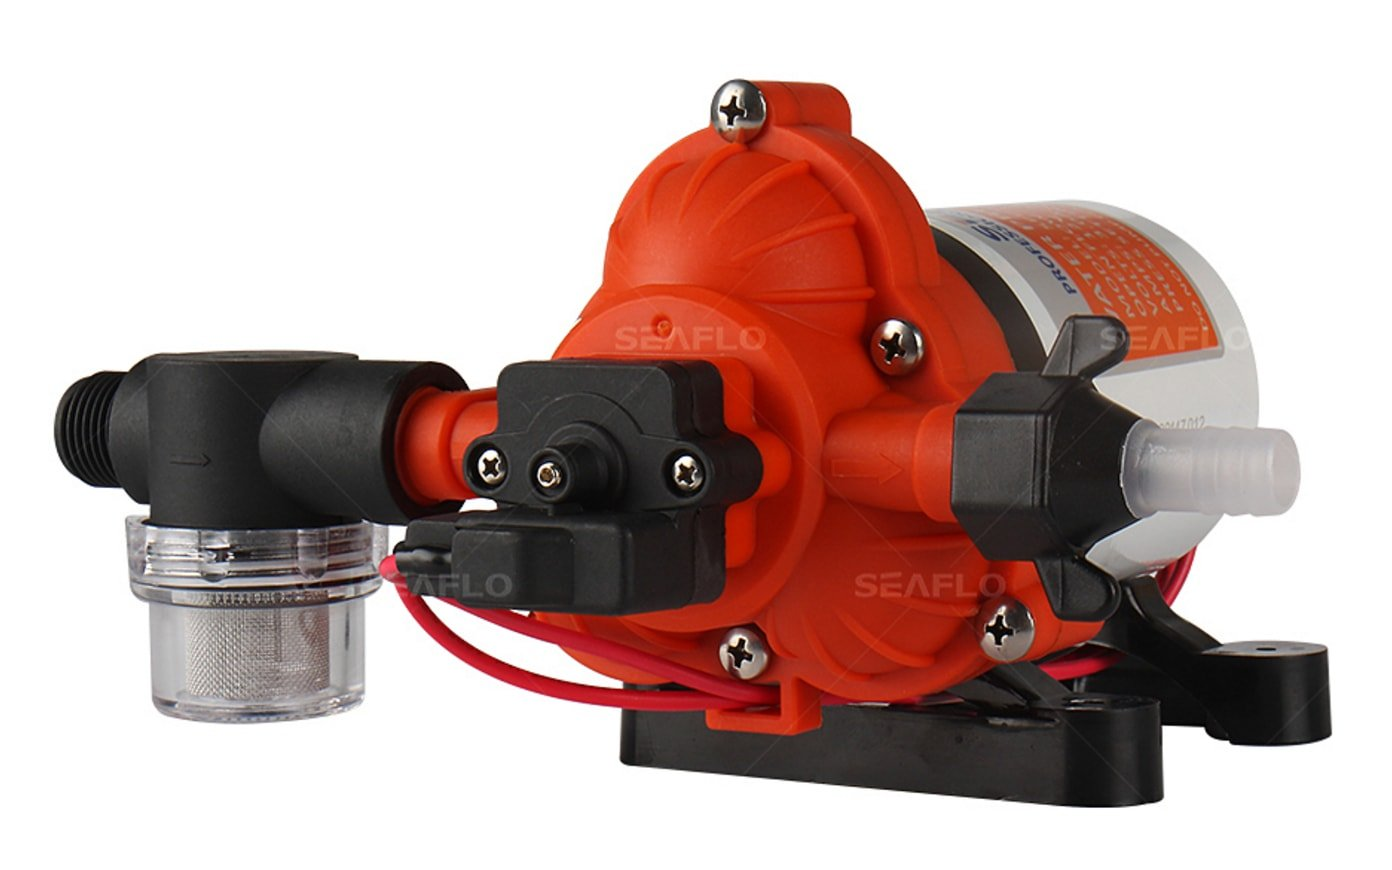 SEAFLO 33-Series Industrial Water Pressure Pump w/Power Plug for Wall Outlet - 115VAC, 3.3 GPM, 45 PSI by Seaflo (Image #3)